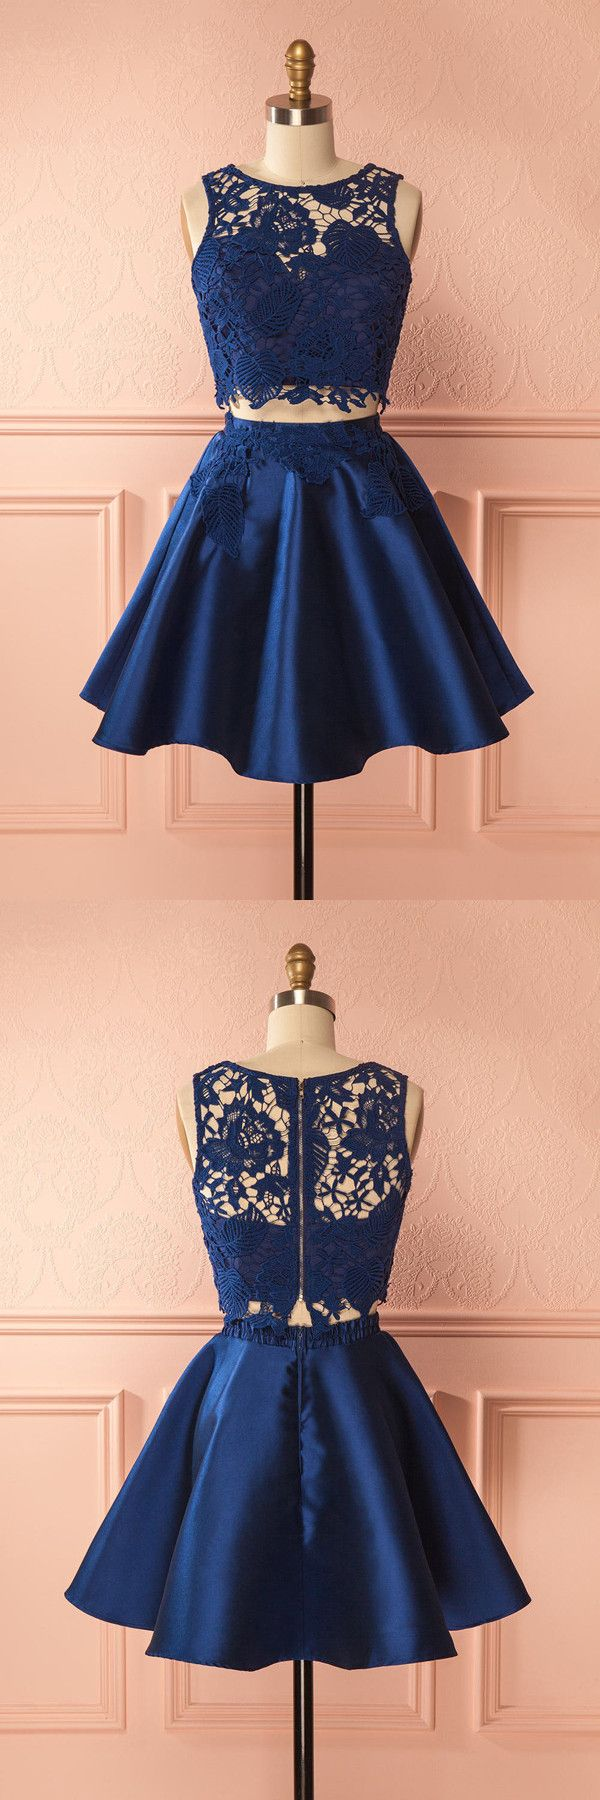 two piece homecoming dress, short homecoming dress, 2017 homecoming dress navy blue short homecoming dress